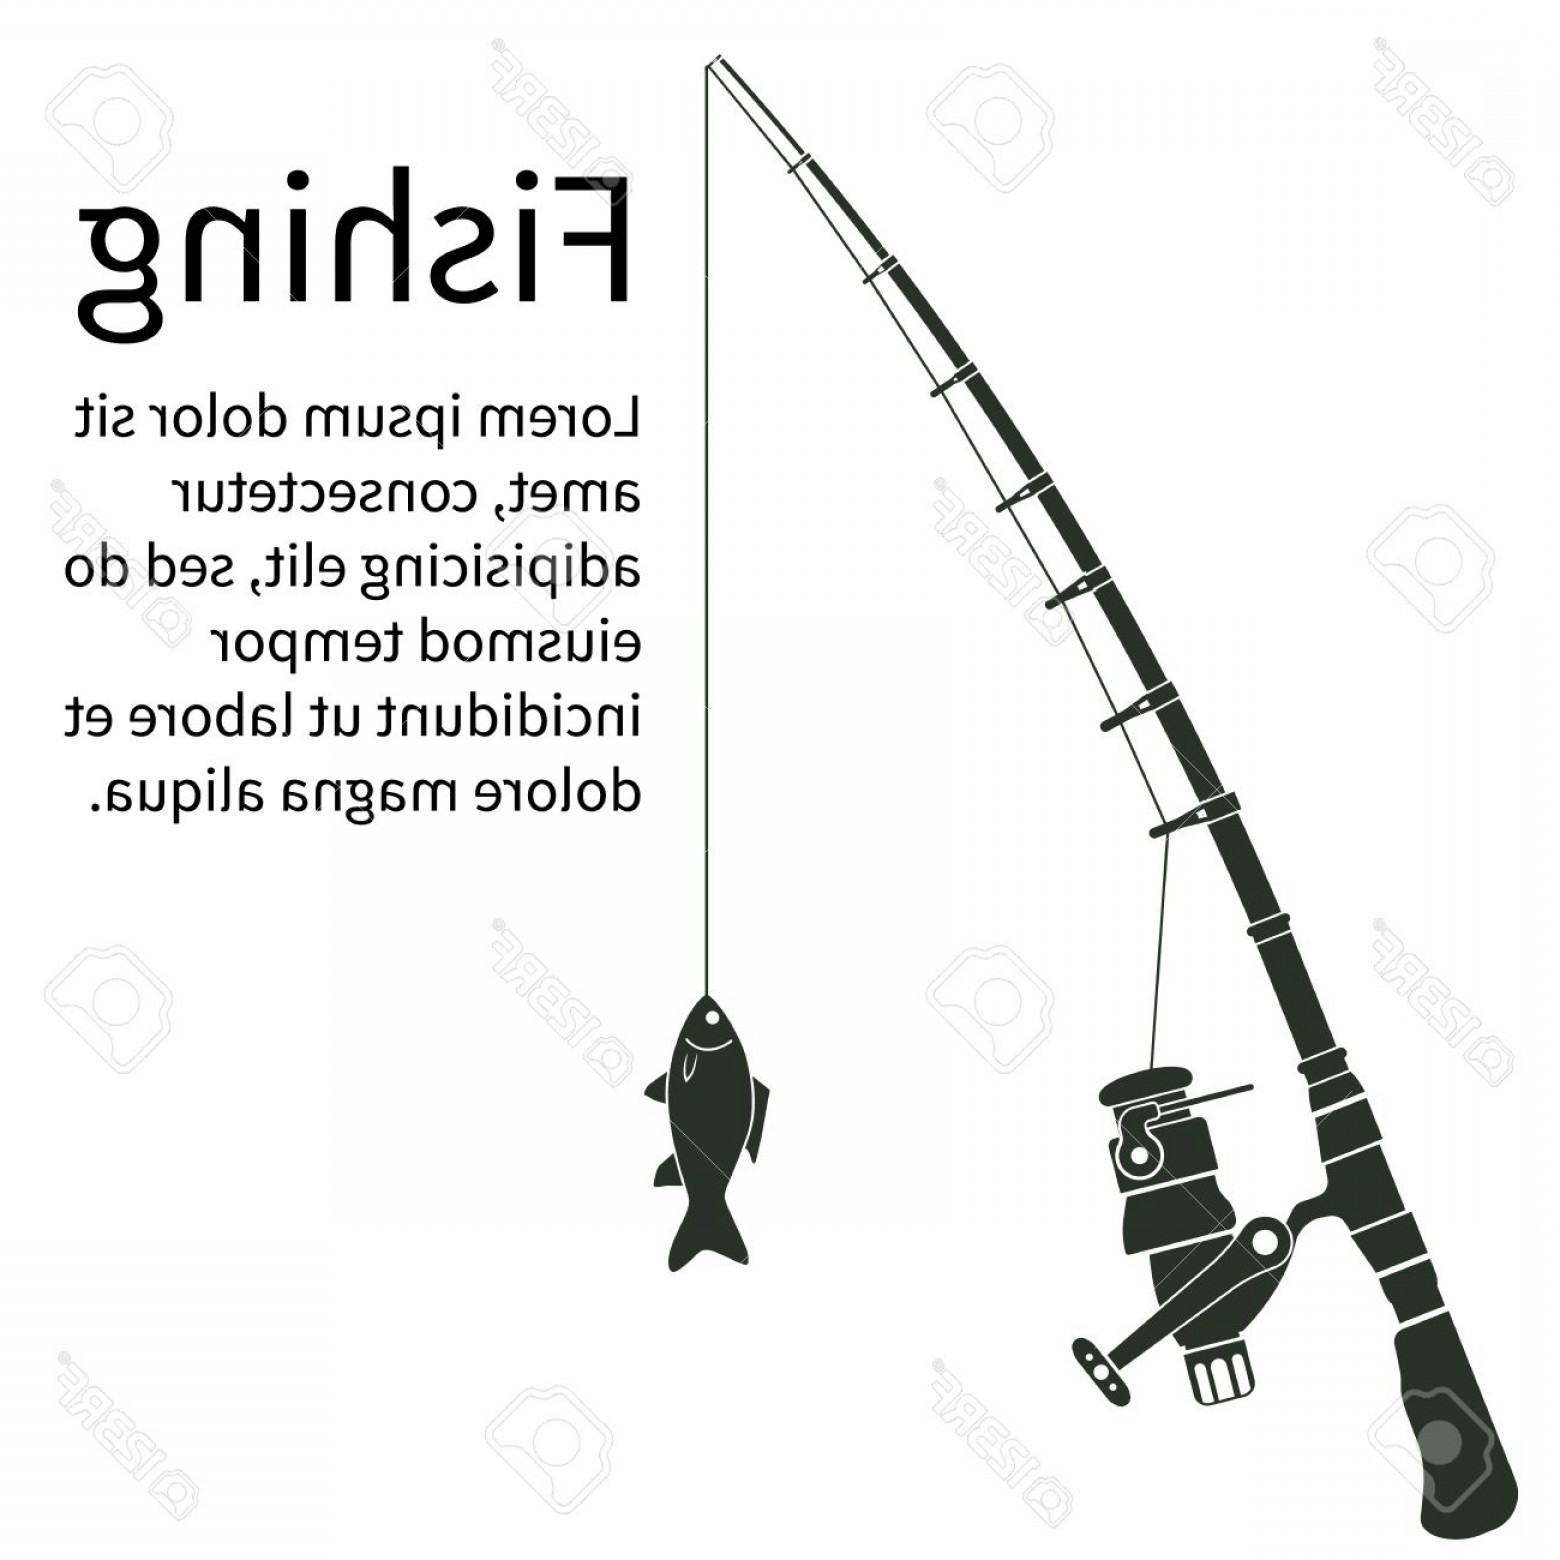 Fishing Pole Silhouette Vector: Photostock Vector Fishing Concept Silhouette Fishing Rod With Fish To Fish Vector Illustration Template Banner For Web